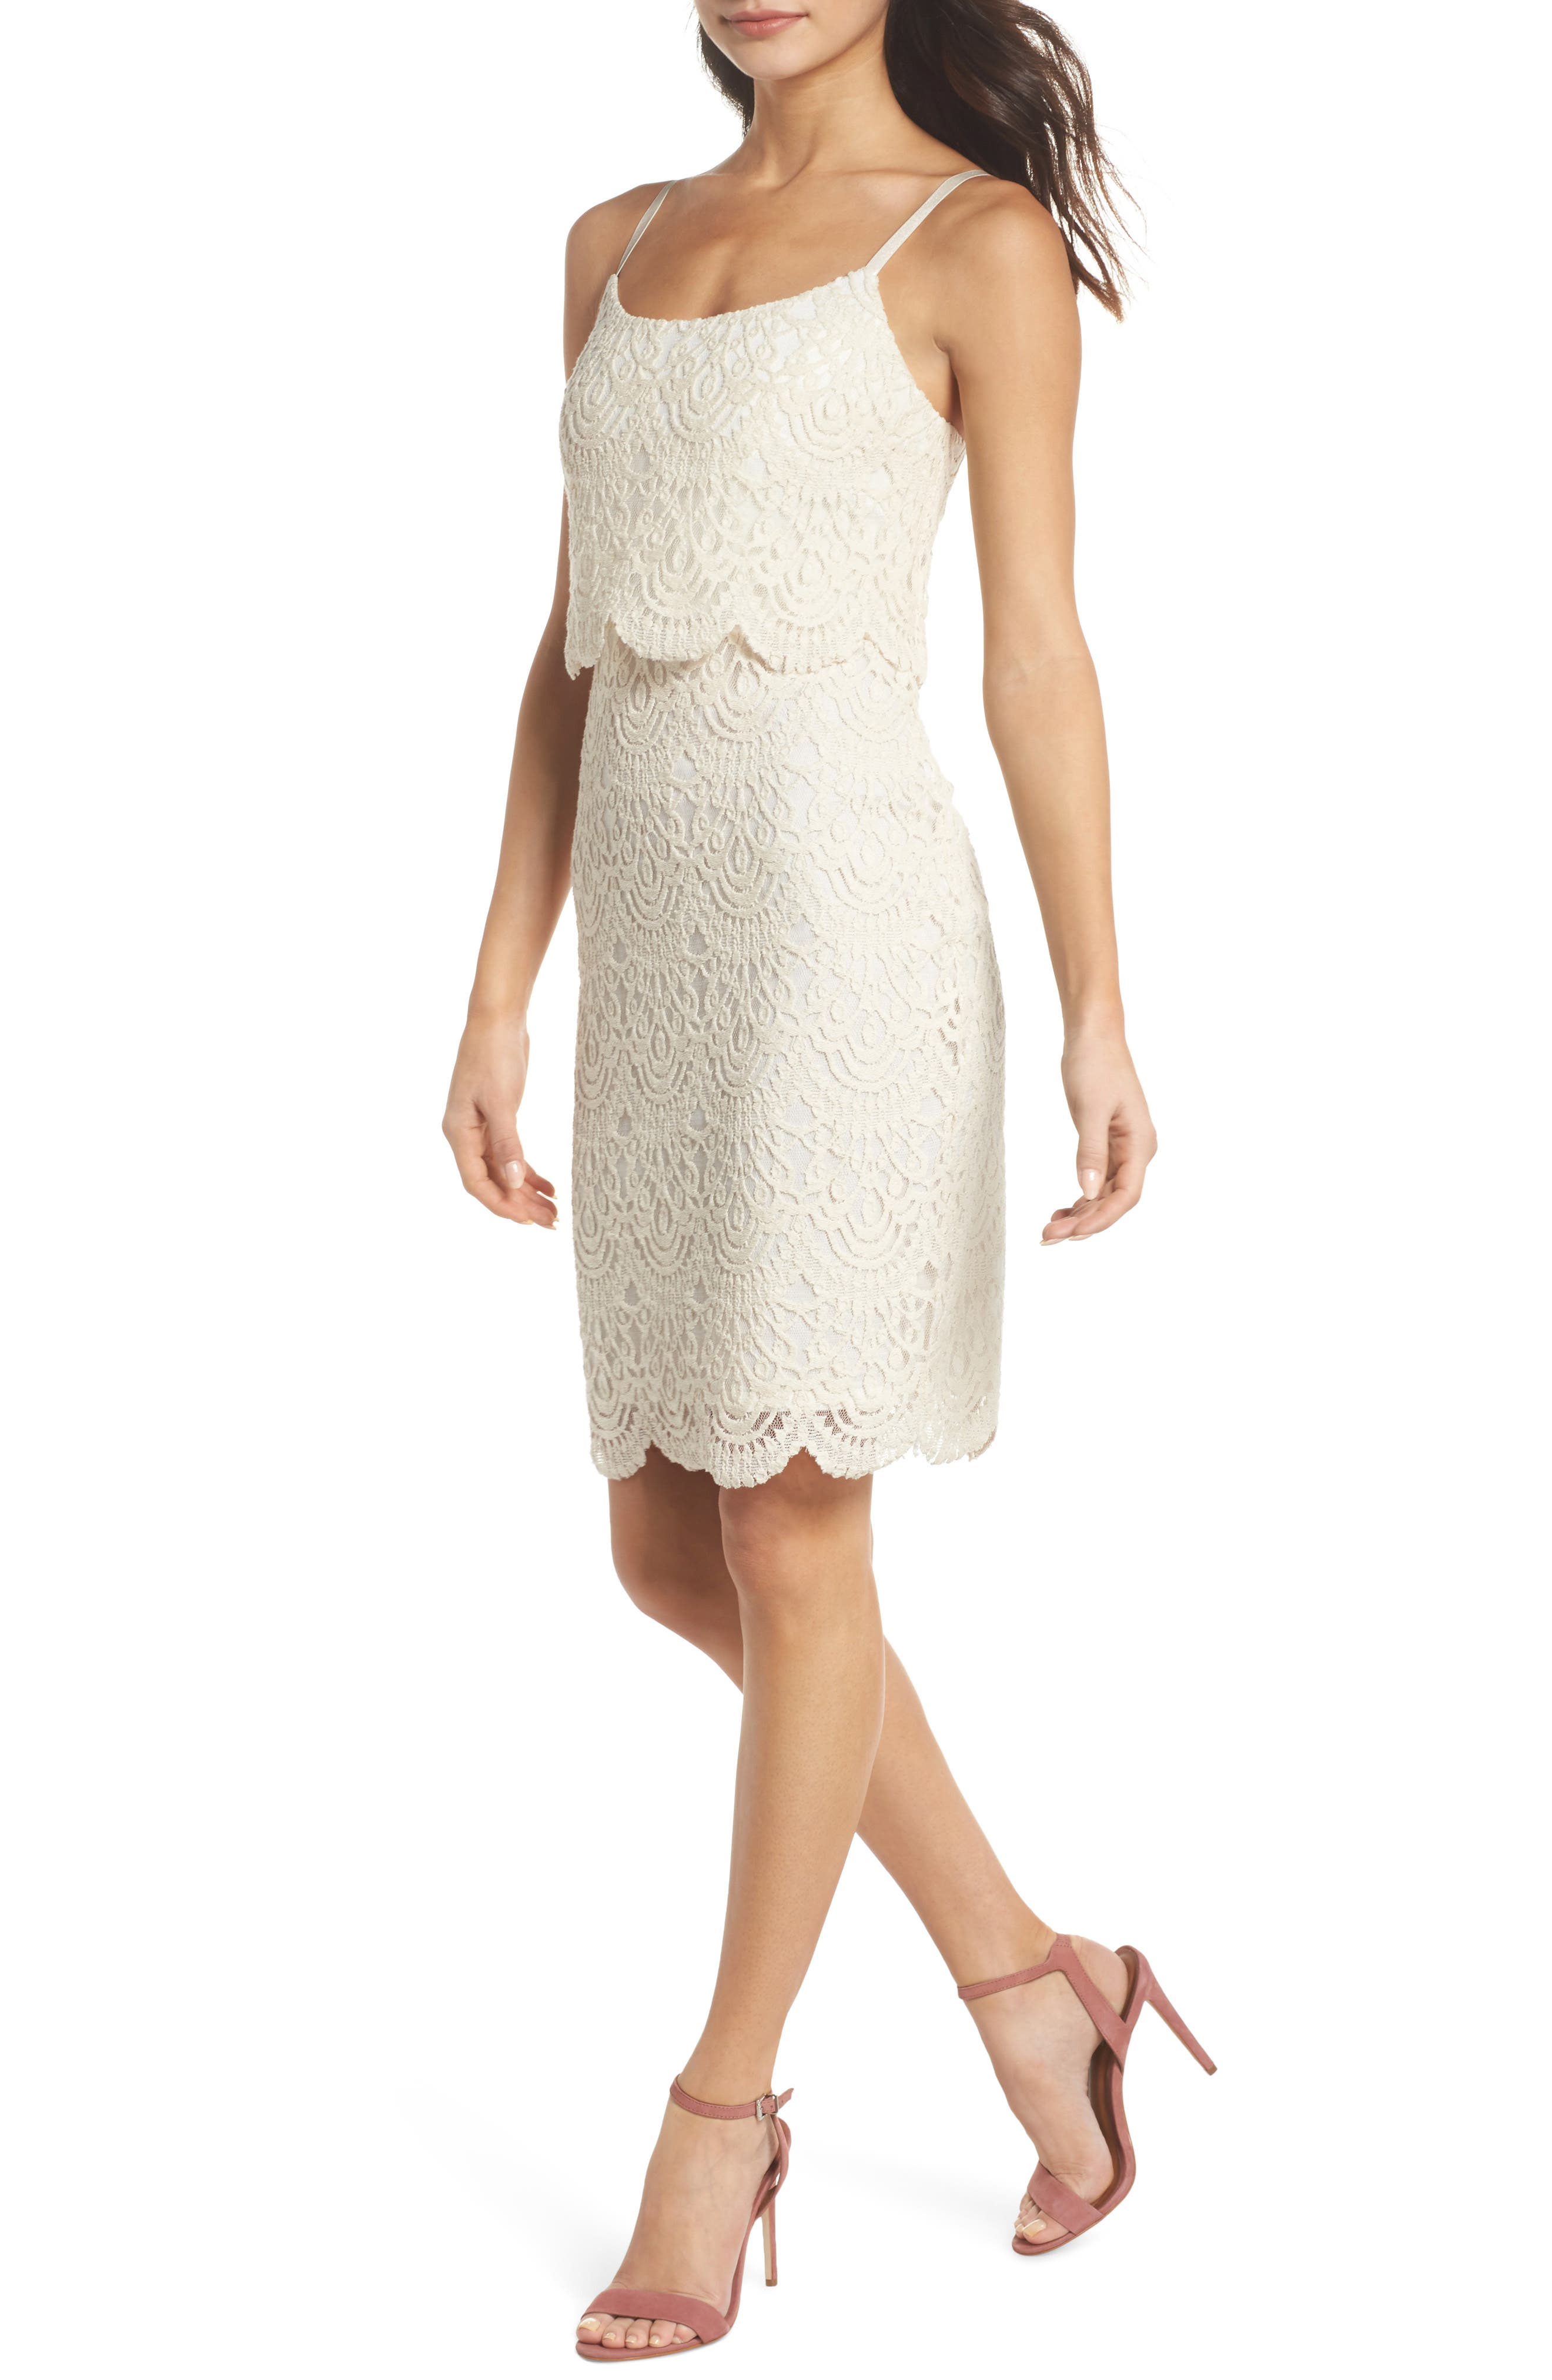 Ali & Jay Barnsdall Afternoon Tiered Lace Dress